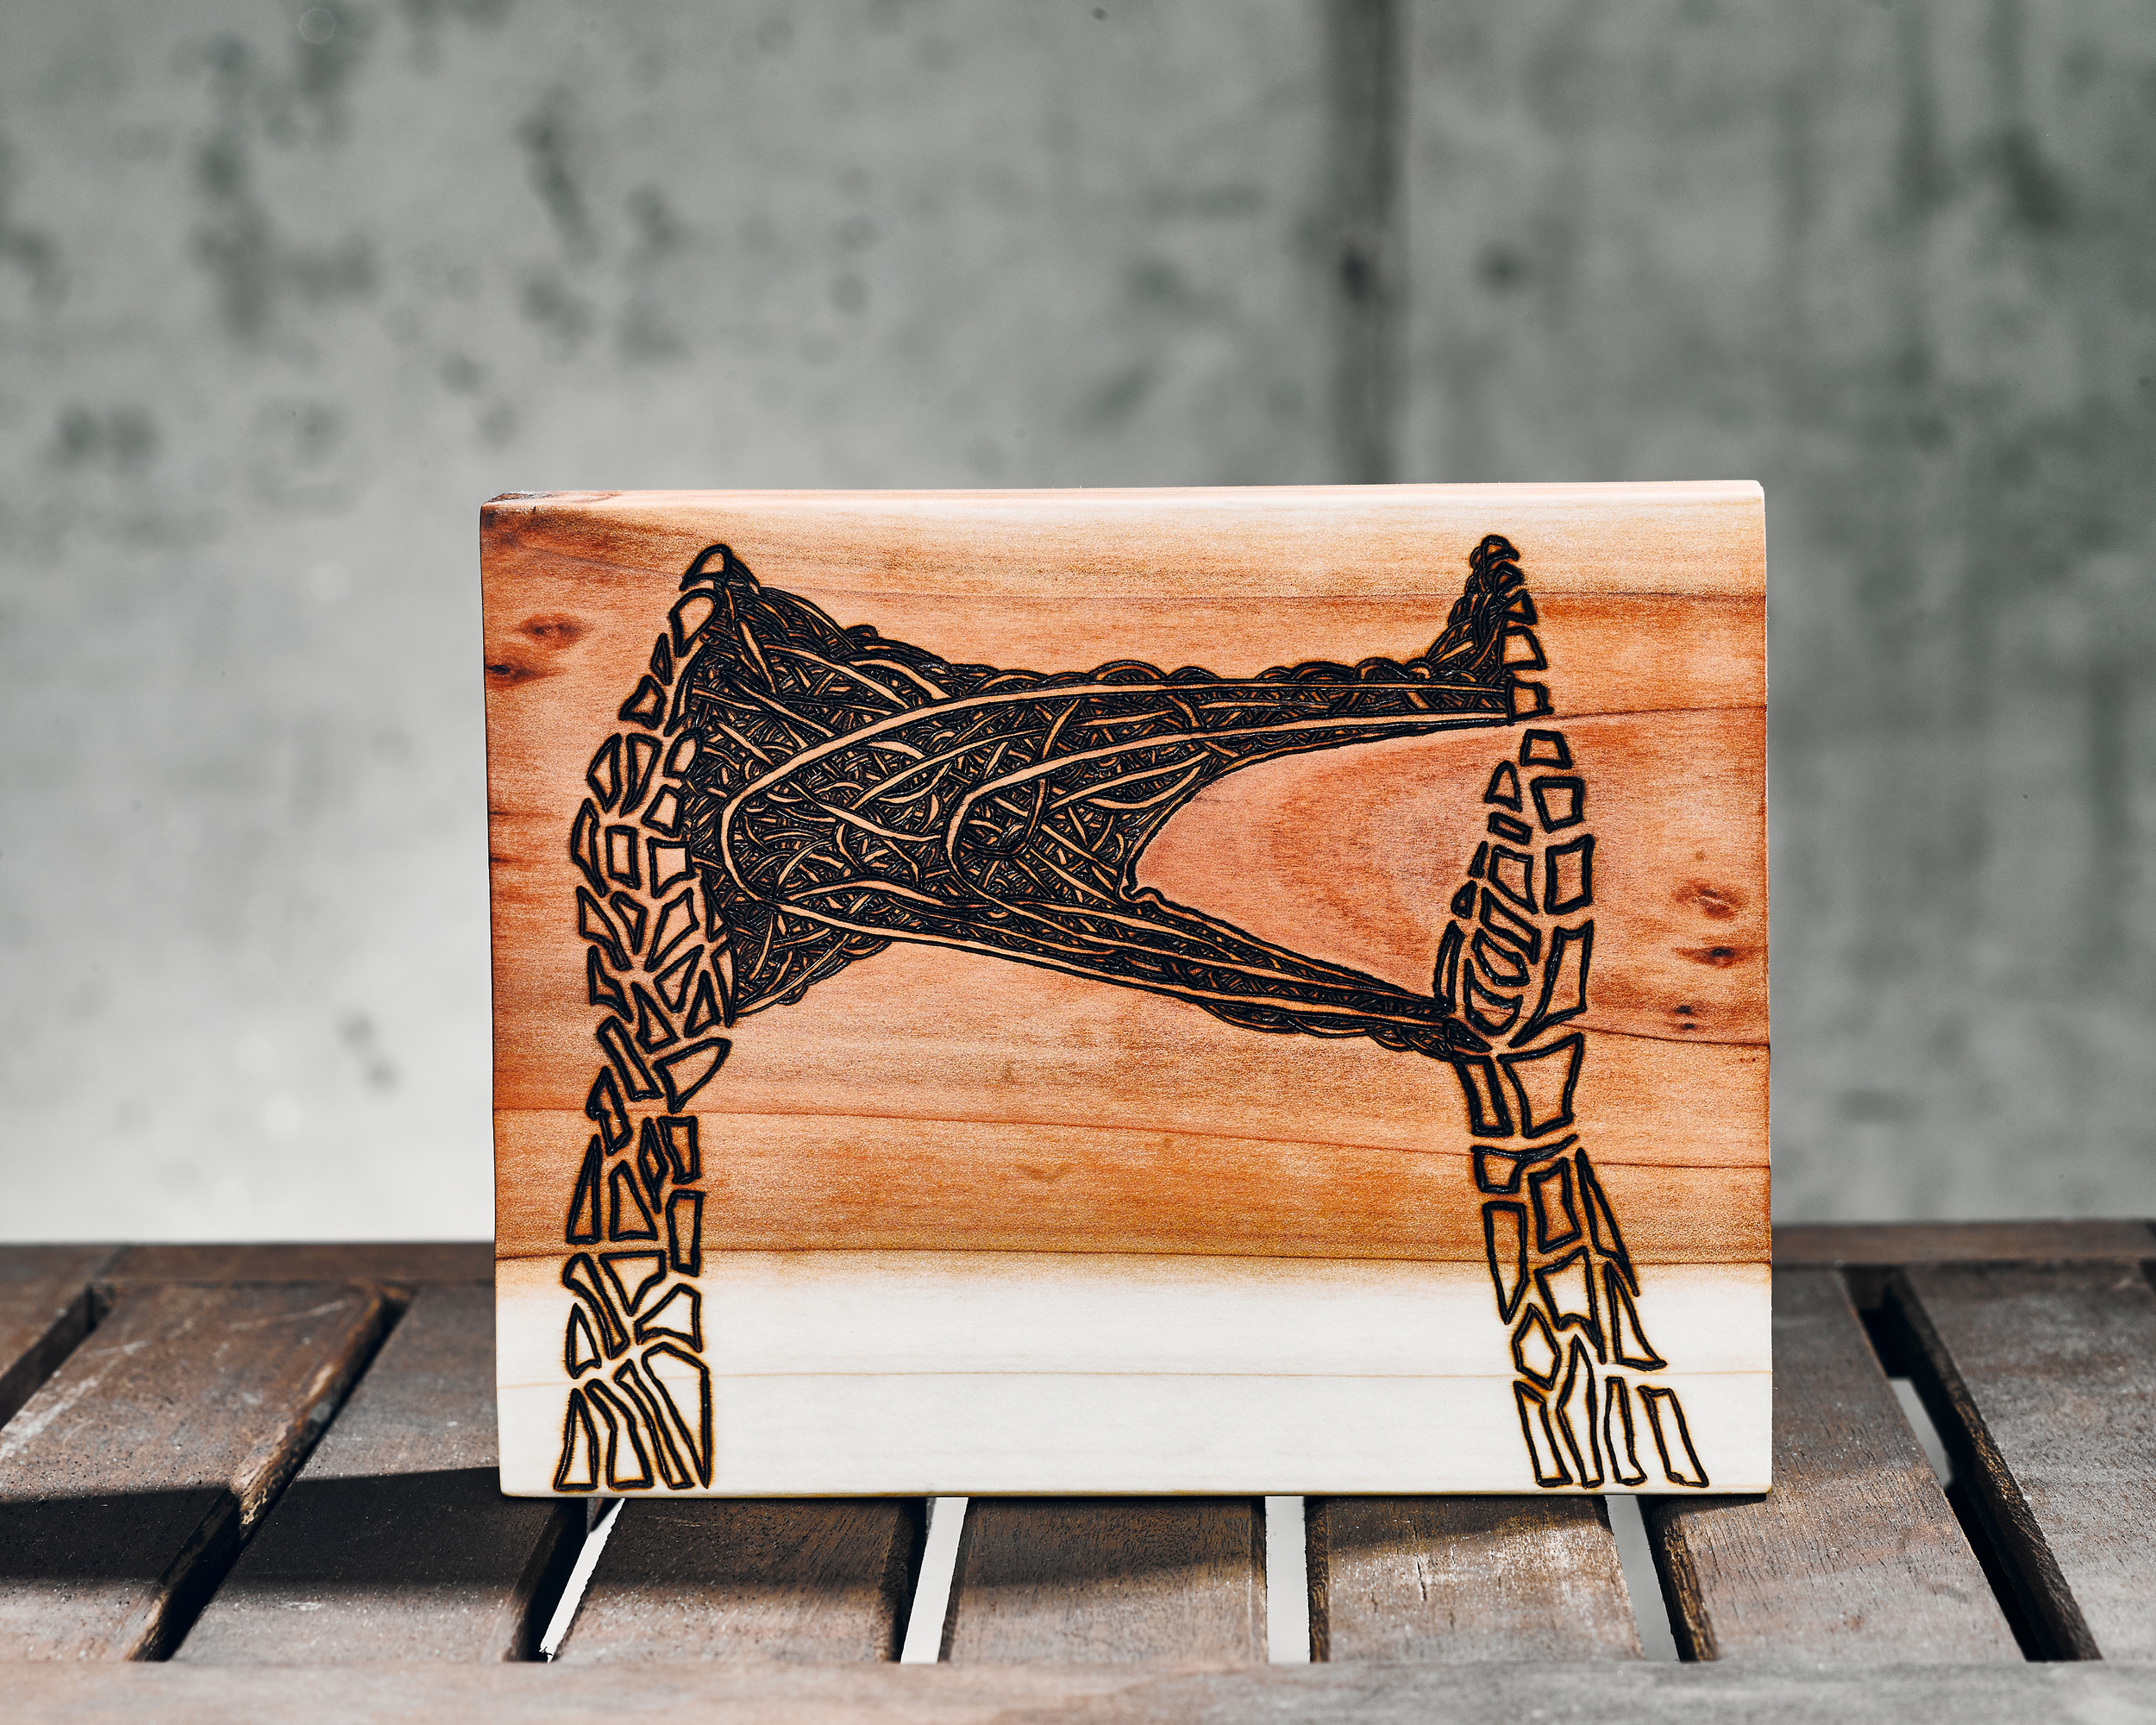 Compassion (2015)  Wood Burning on Red Wood 7 in x 1 ½ in x 6 in  SOLD